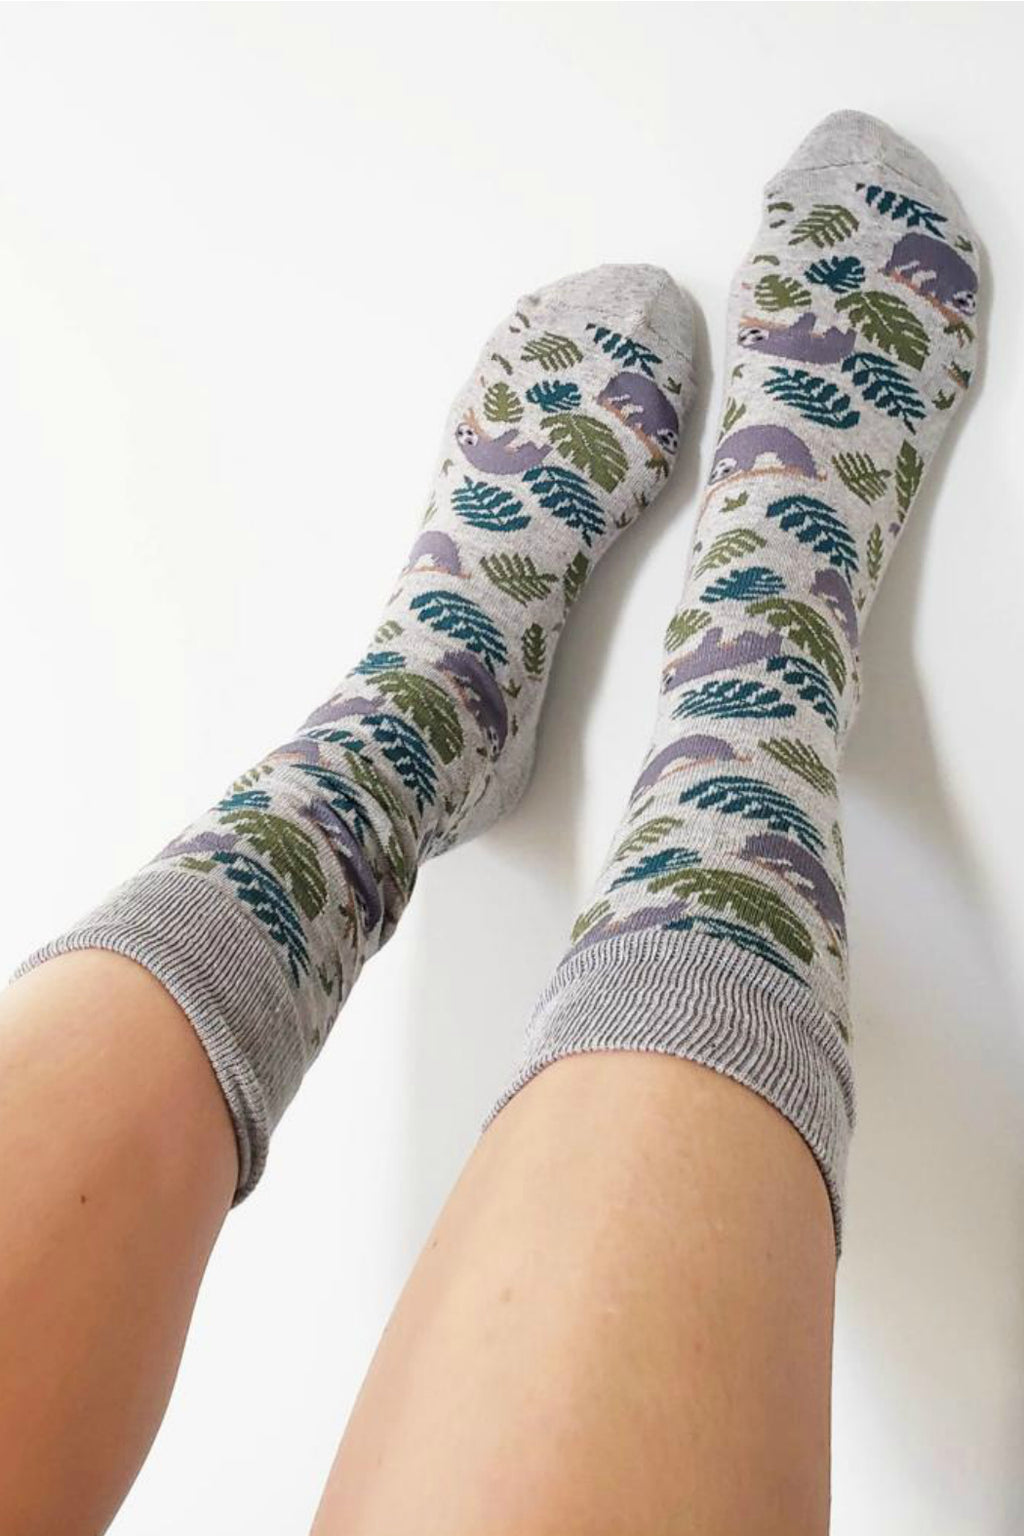 Conscious Step Socks that Protect Sloths - Grey